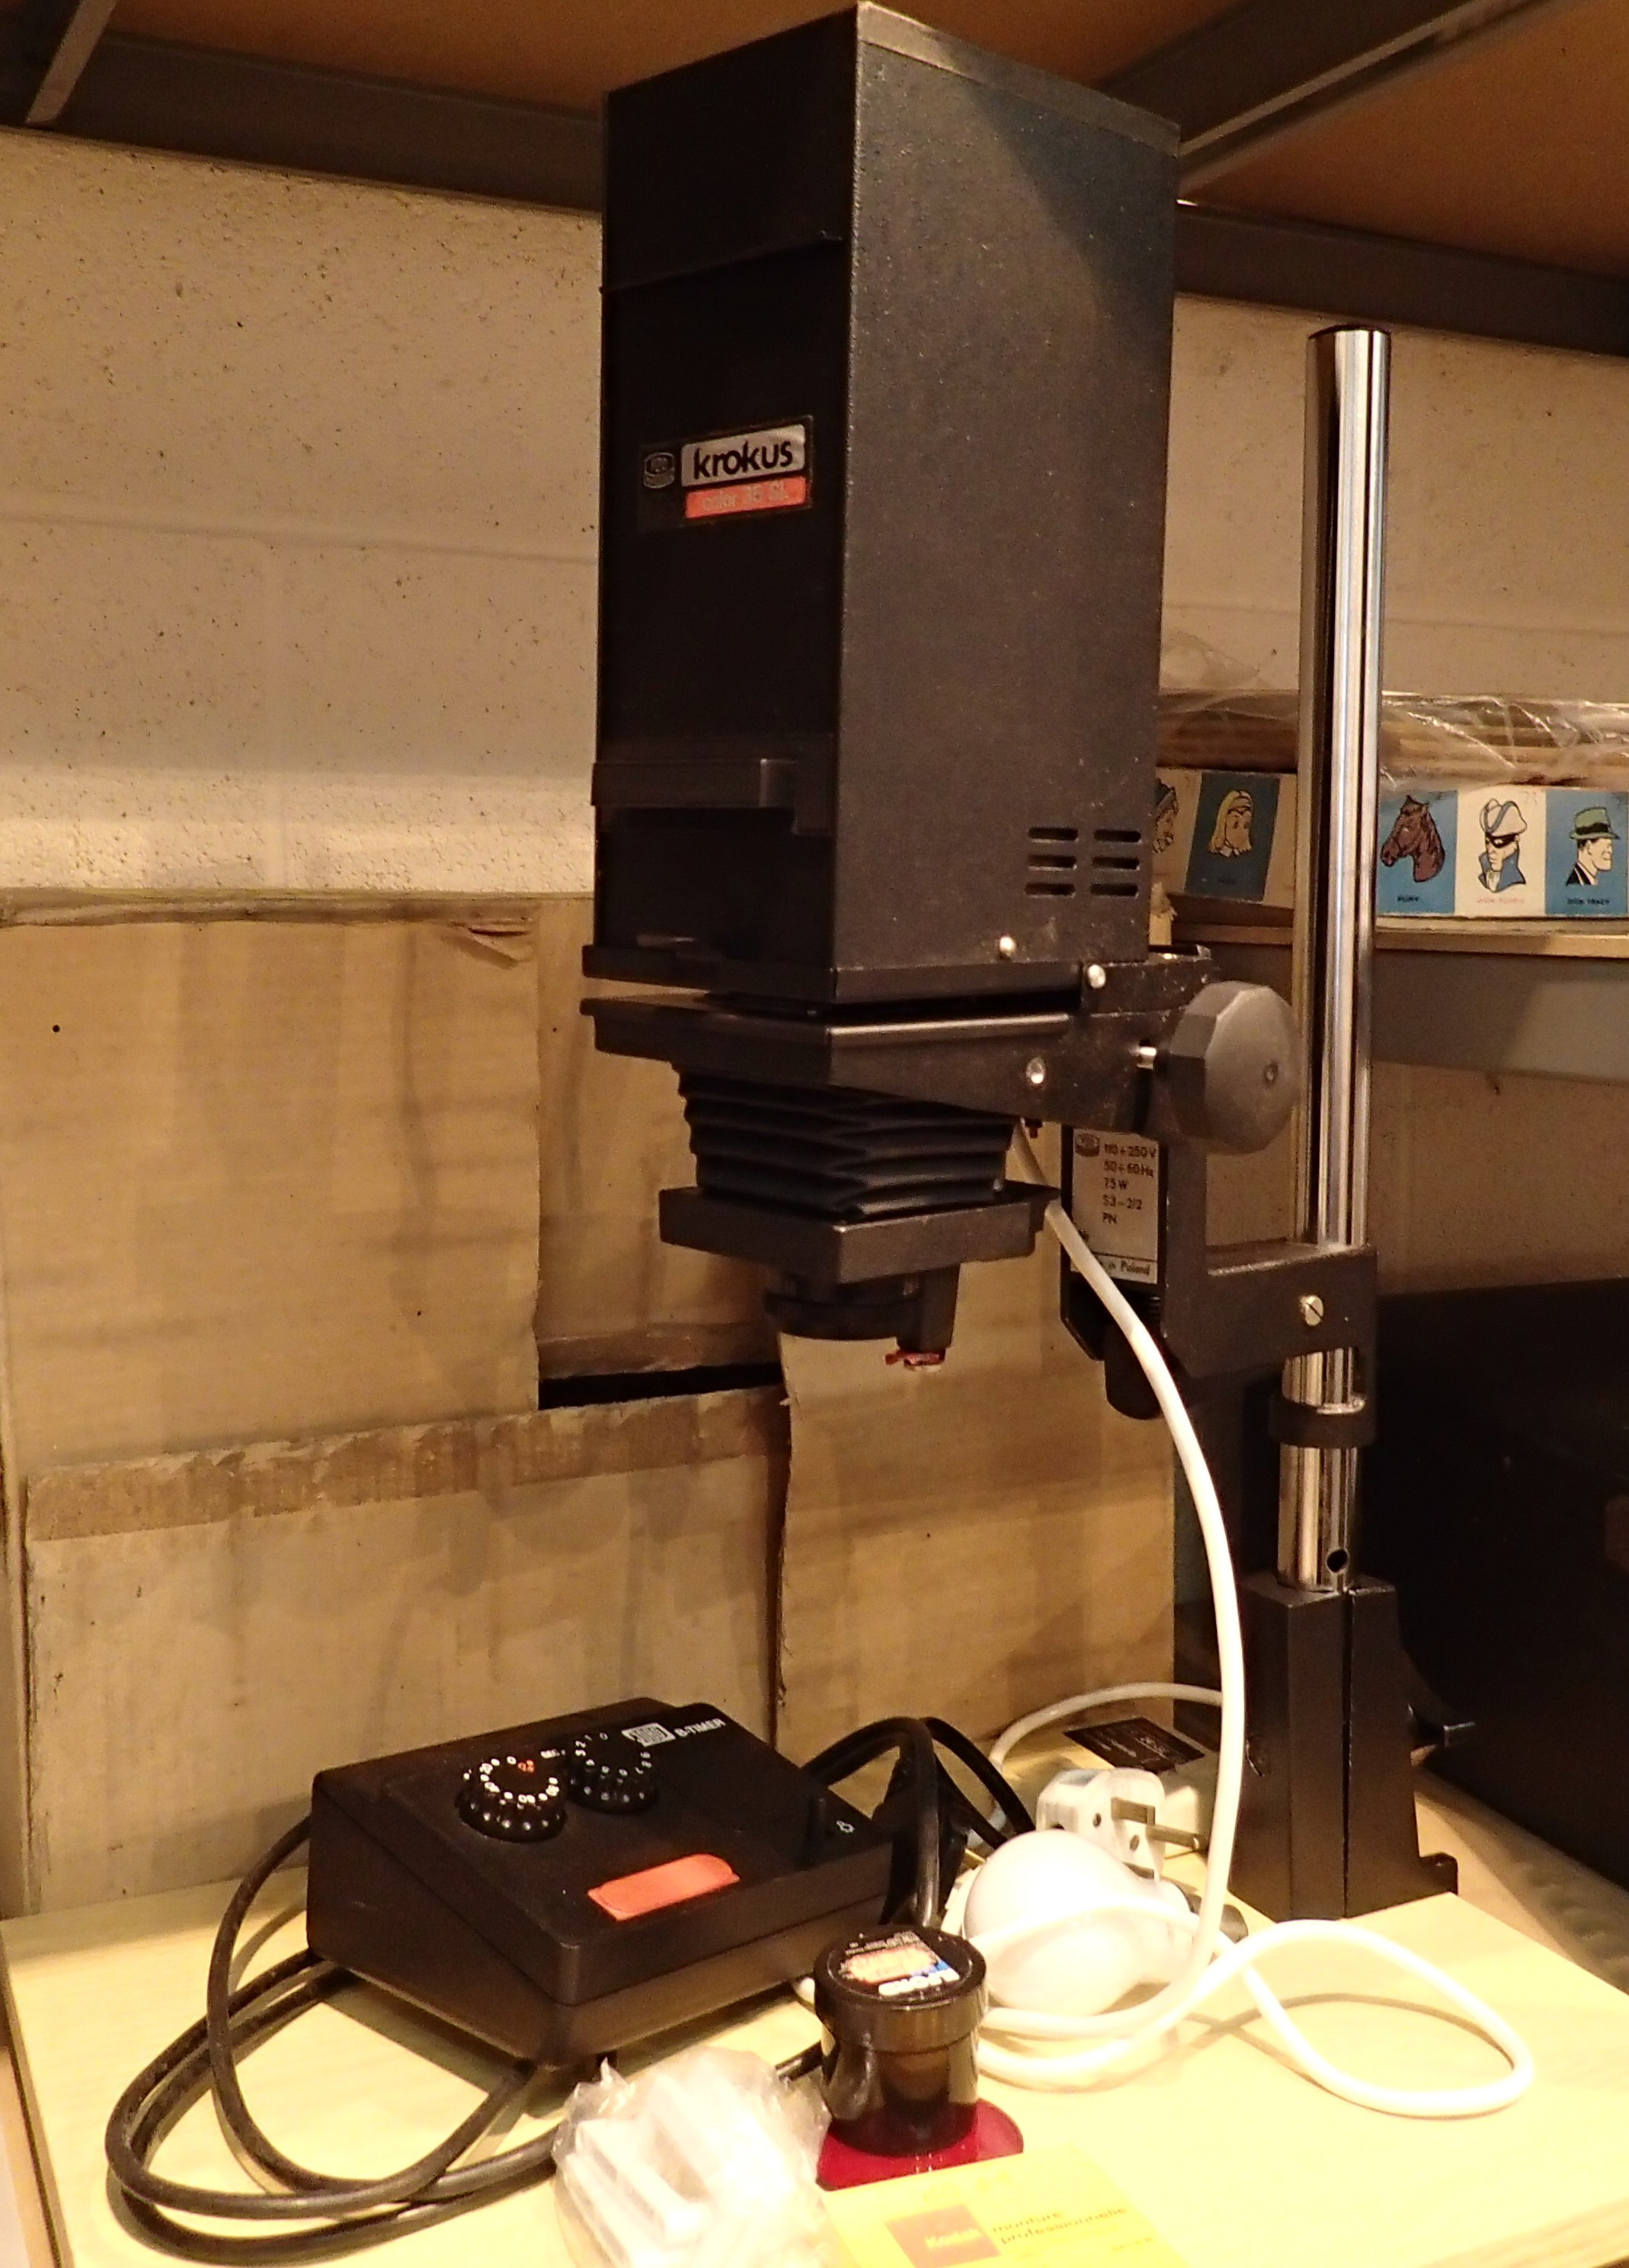 Krokus colour 35 SH photographic enlarger. Not available for in-house P&P, contact Paul O'Hea at